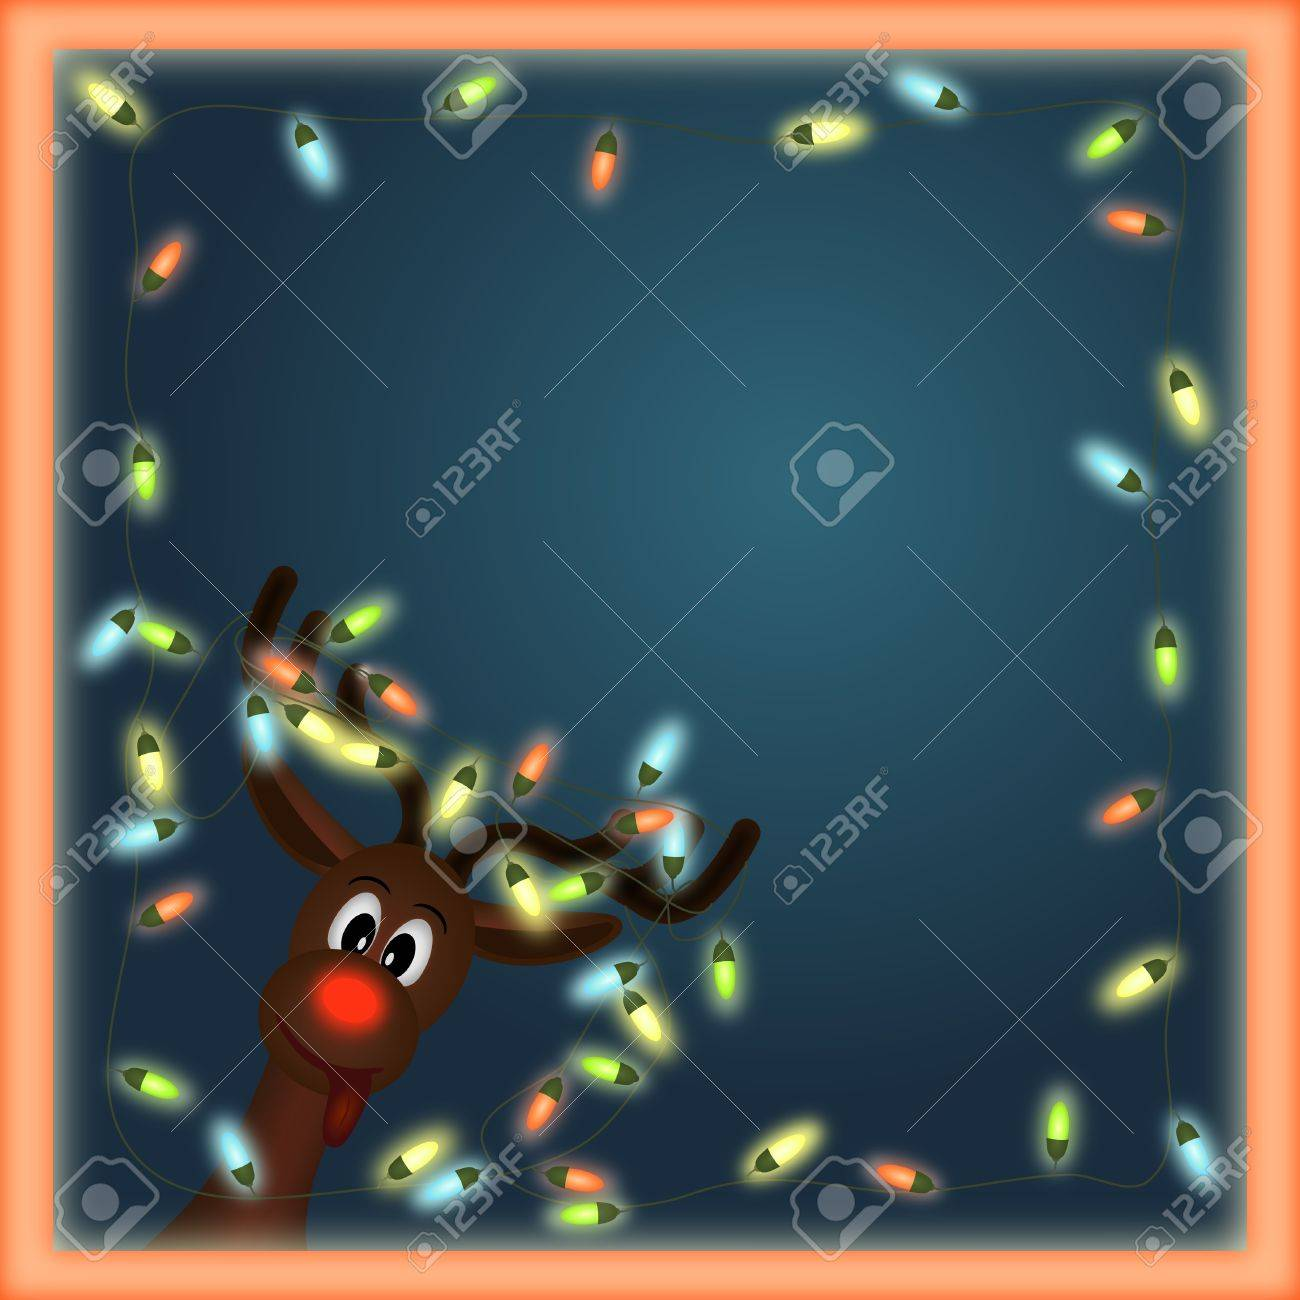 funny reindeer with christmas lights tangled in antlers in orange  frame with dark background Stock Photo - 11084288